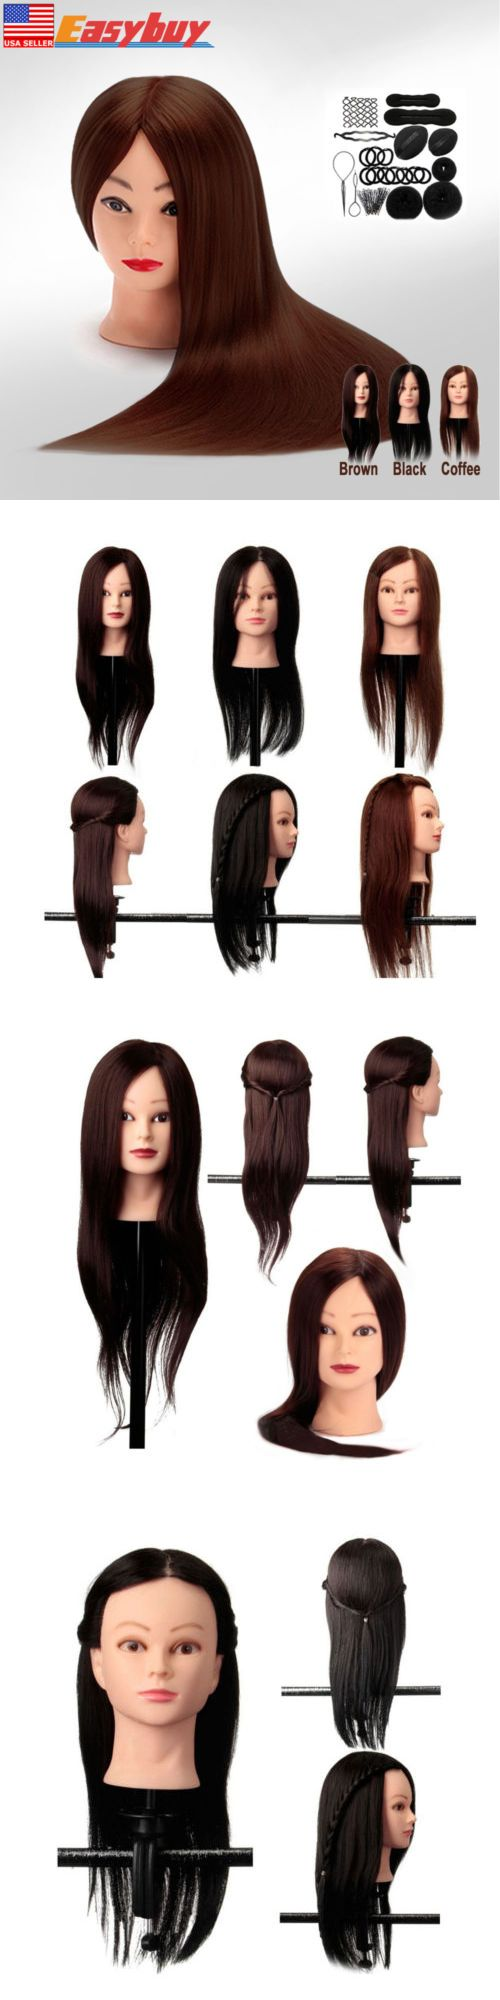 Other Salon and Spa Equipment: 24 New Hair Training Practice Head Mannequin Hairdressing Or Braid Tool Set Pro BUY IT NOW ONLY: $36.49